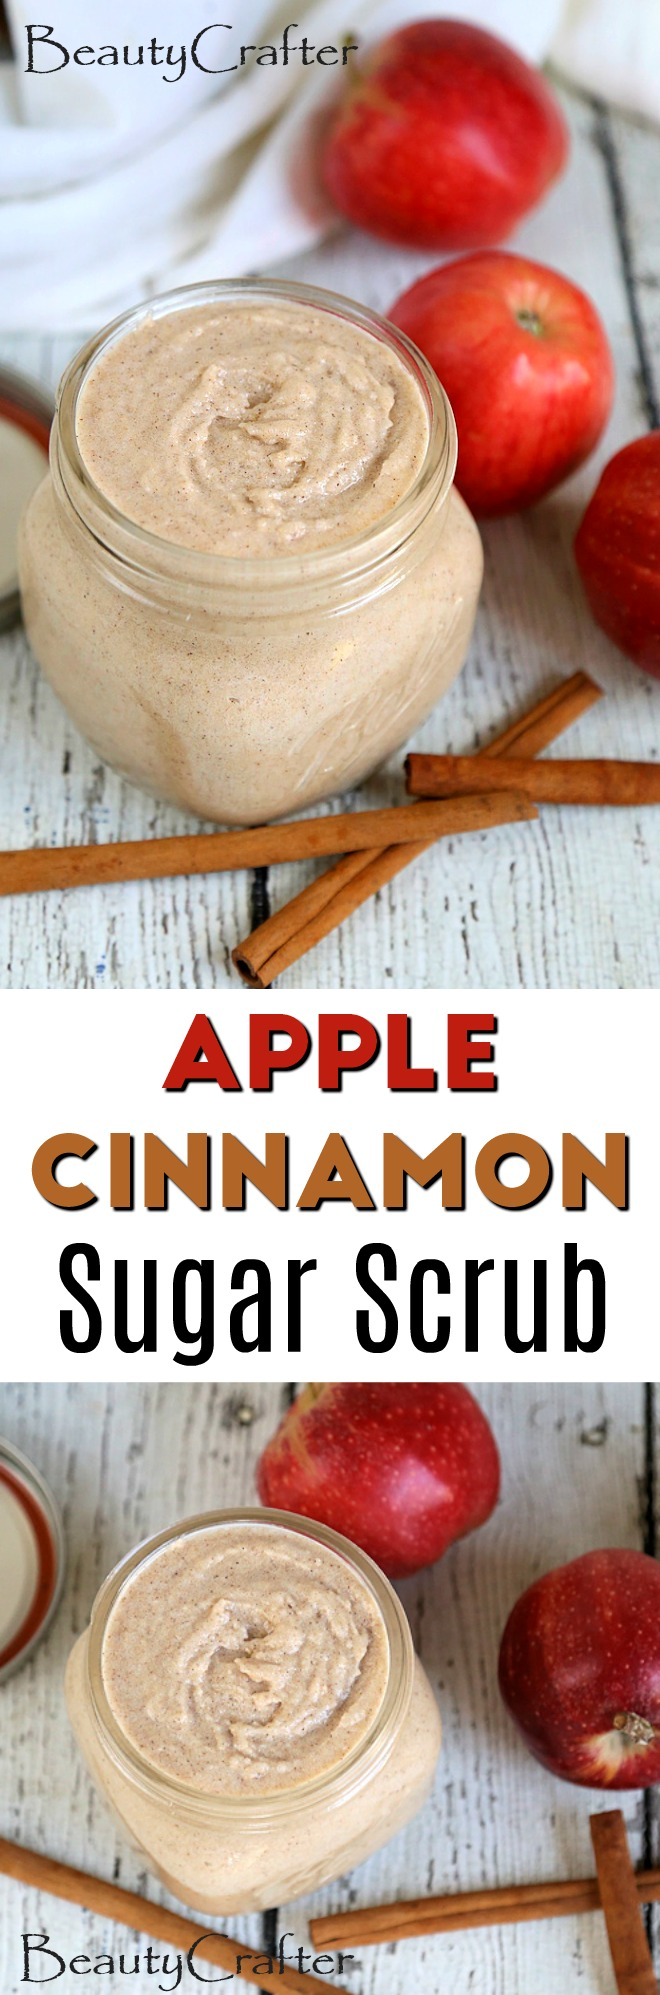 apple cinnamon sugar scrub recipe - beauty crafter